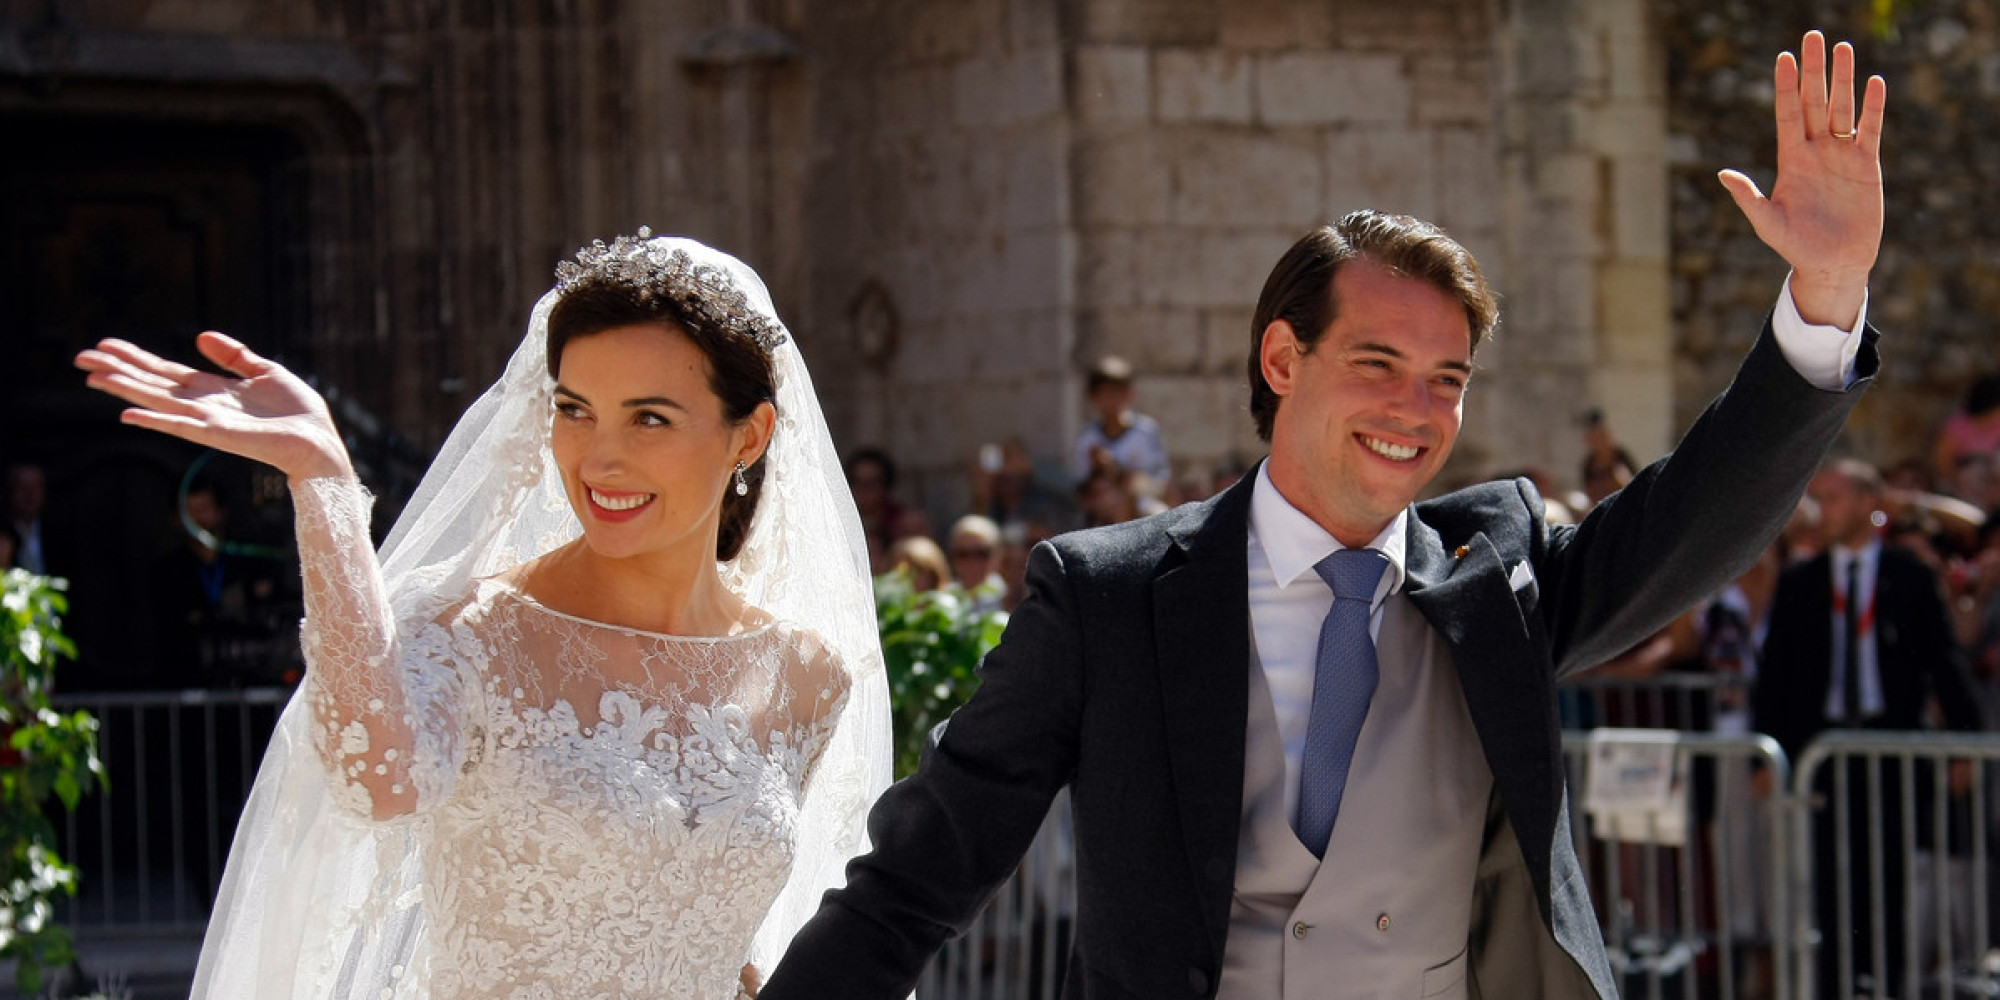 Luxembourg Royal Wedding Prince Felix Claire Lademacher Have Second Ceremony PHOTOS